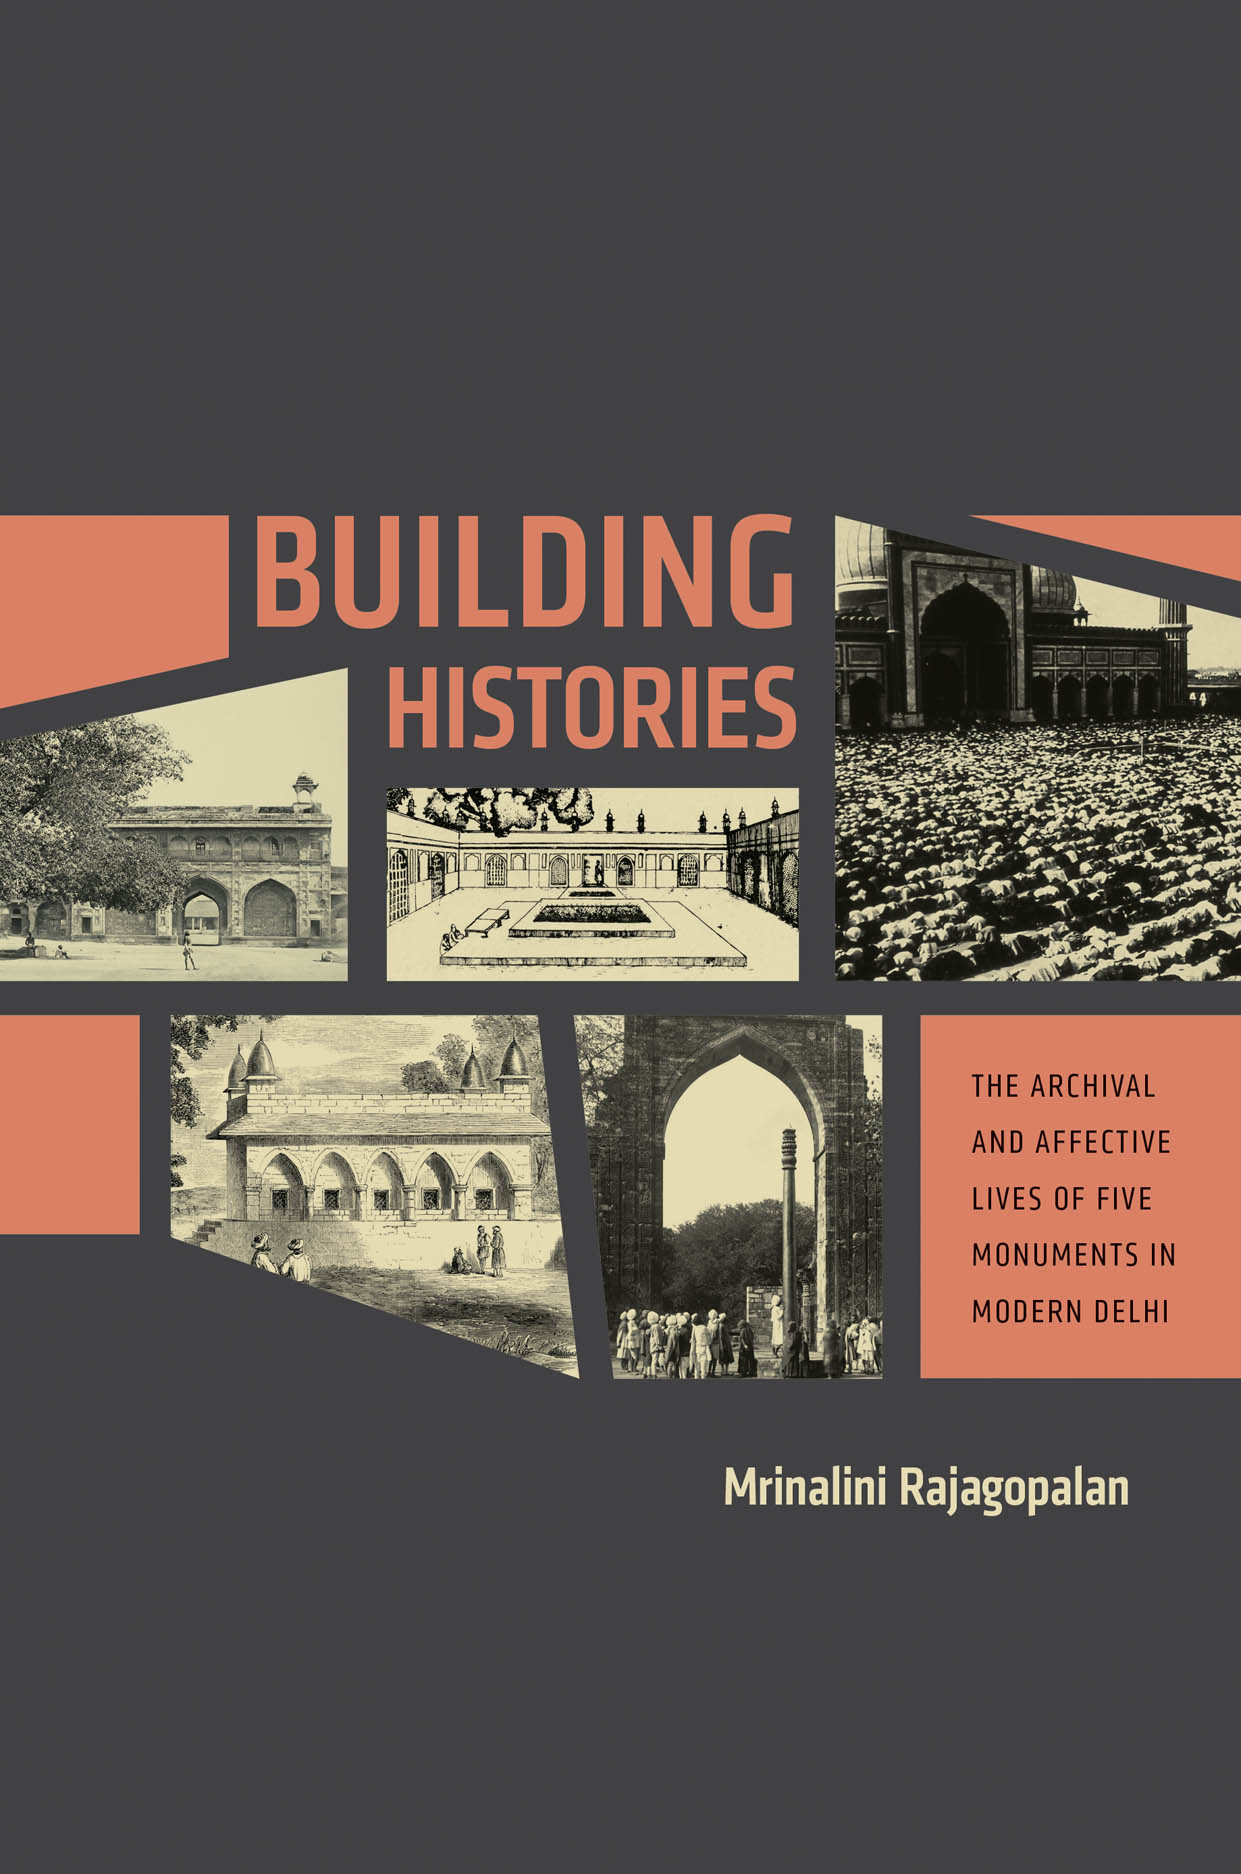 Building Histories: The Archival and Affective Lives of Five Monuments in Modern Delhi